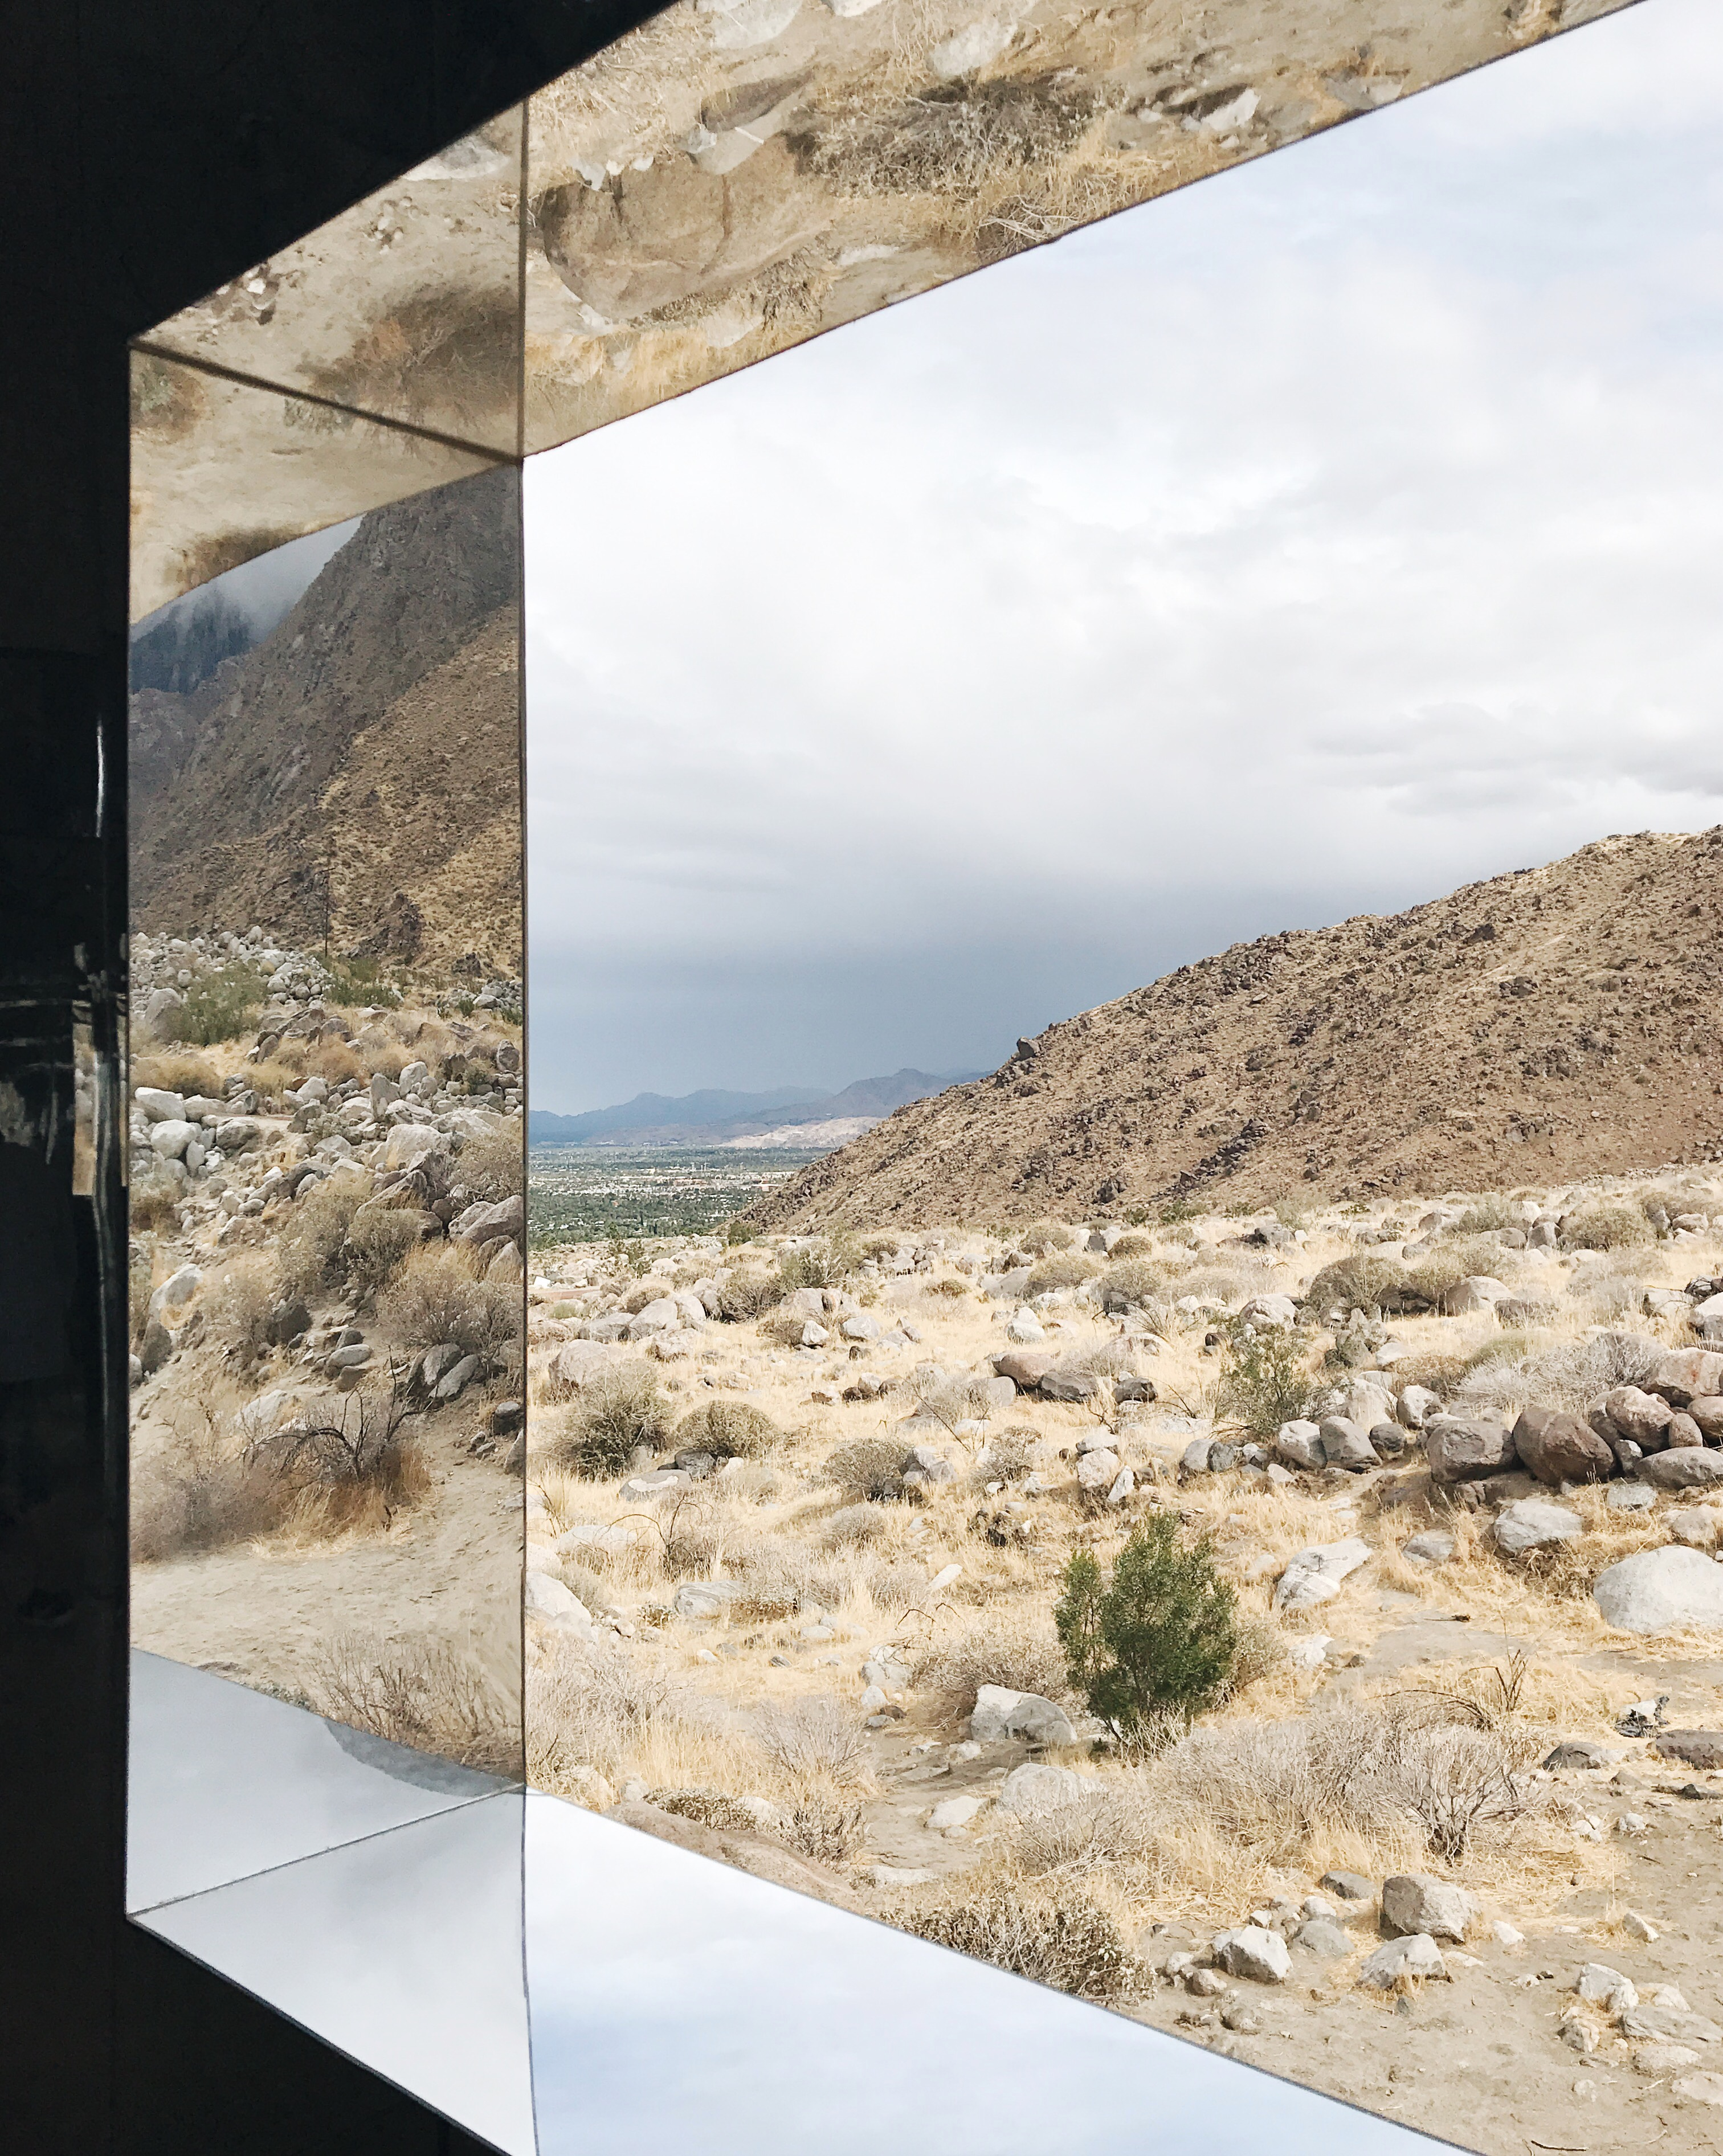 jojotastic travel guide and visual diary for palm springs. the mirage house by doug aitken